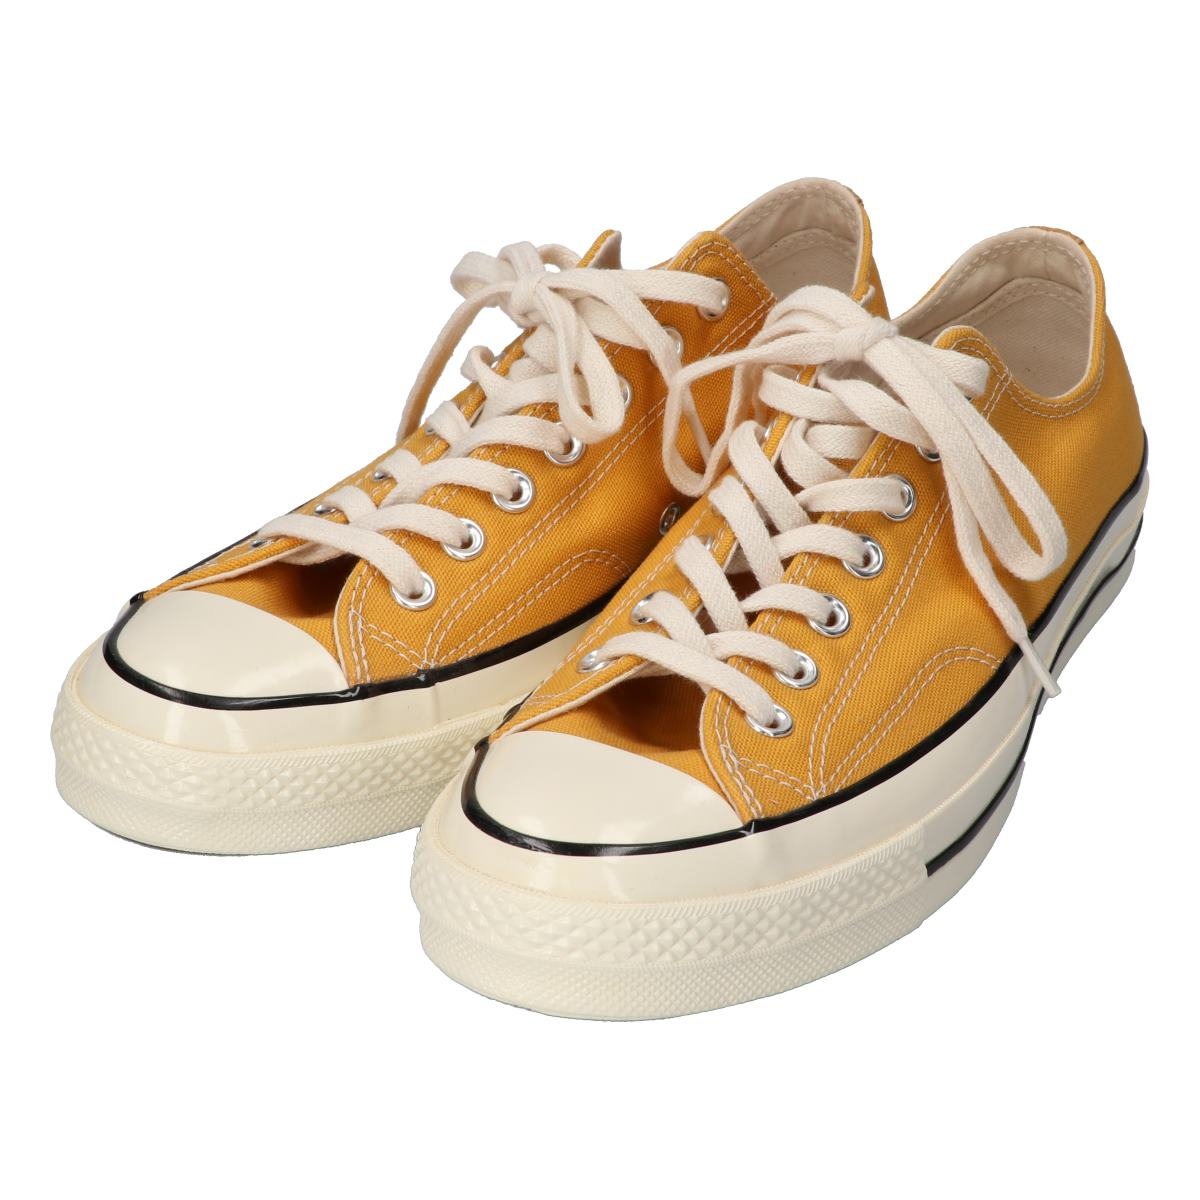 CONVERSE Converse 151229C CHUCK TAYLOR ALL STAR 70 OX zipper Taylor all stars 70 low frequency cut sneakers 27.5 SUN FLOWER YELLOW men